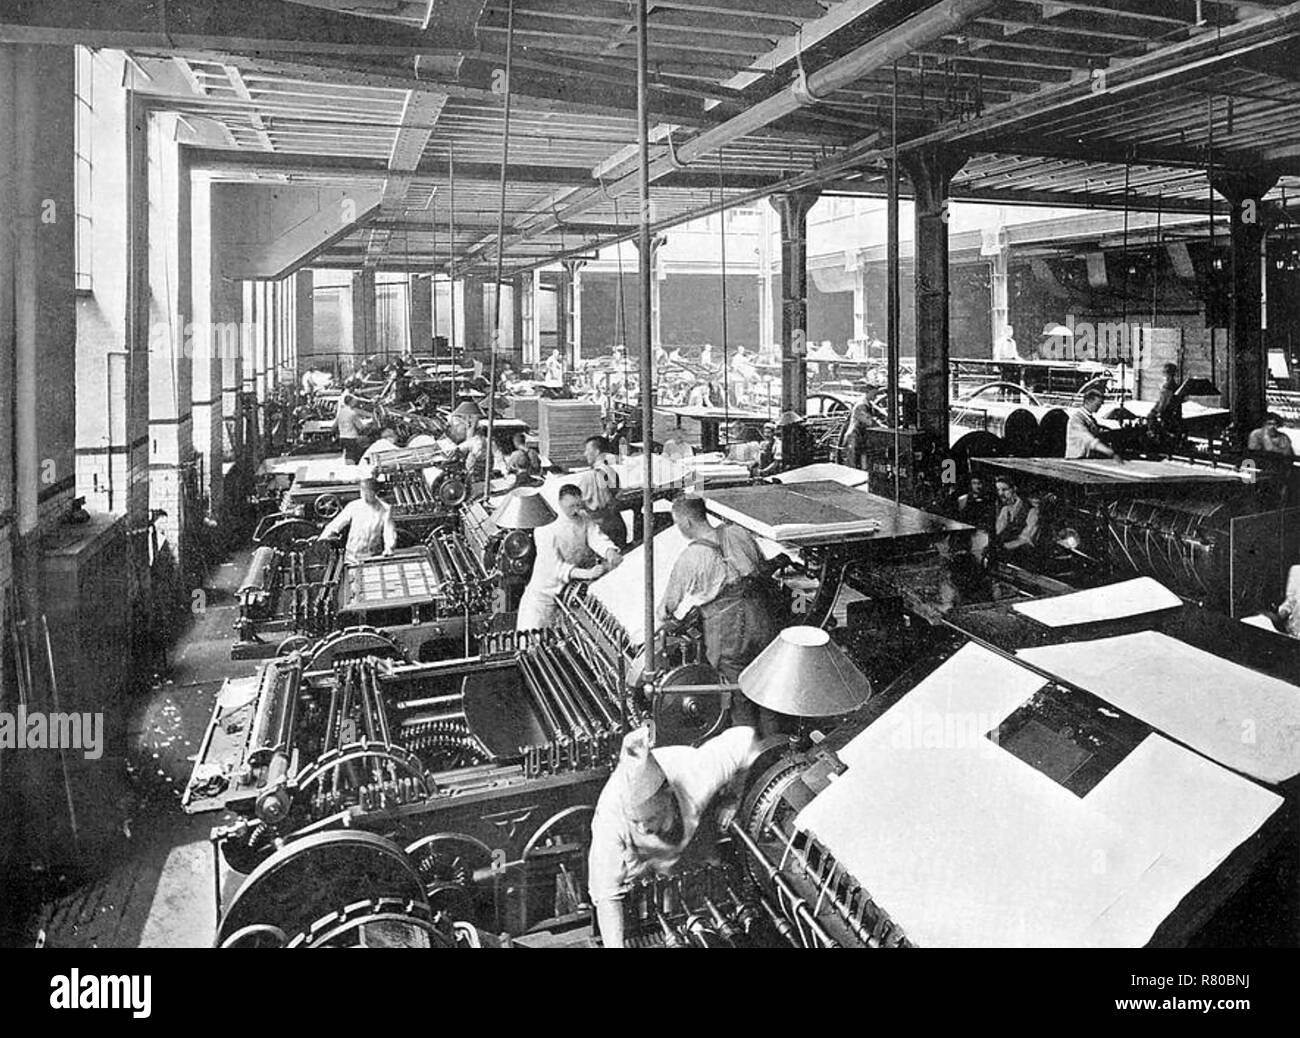 CASSELL & CO's printing works at La Belle Sauvage on Ludgate Hill,London, about 1912 - Stock Image